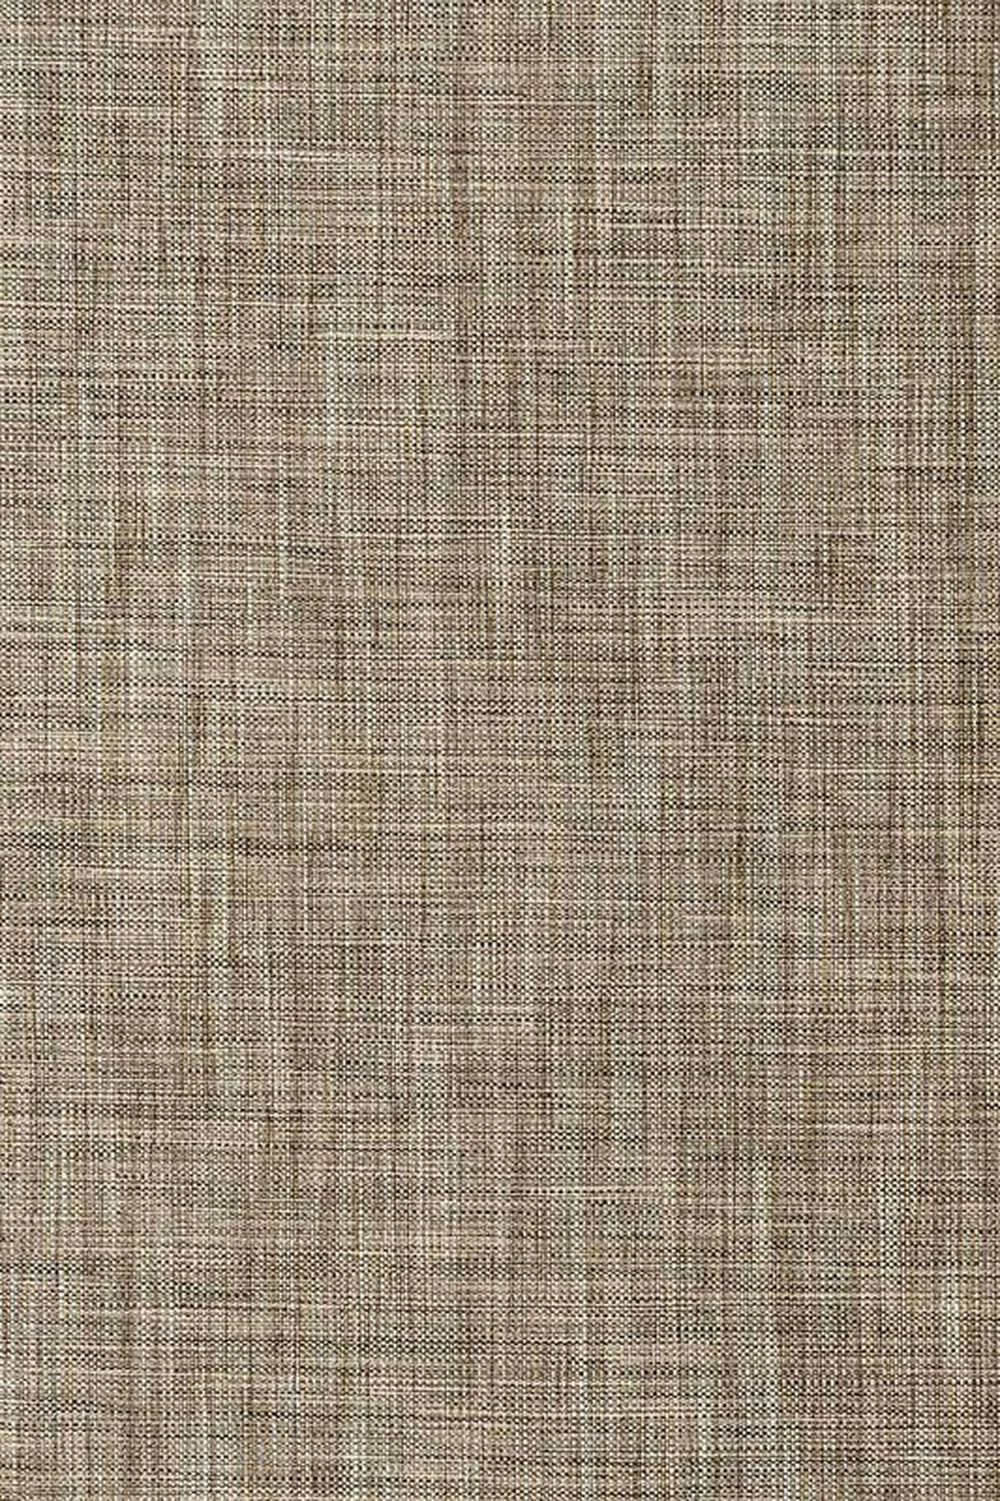 Photo of the fabric Mela Java swatch by Pegasus. Use for Upholstery Heavy Duty, Accessory. Style of Plain